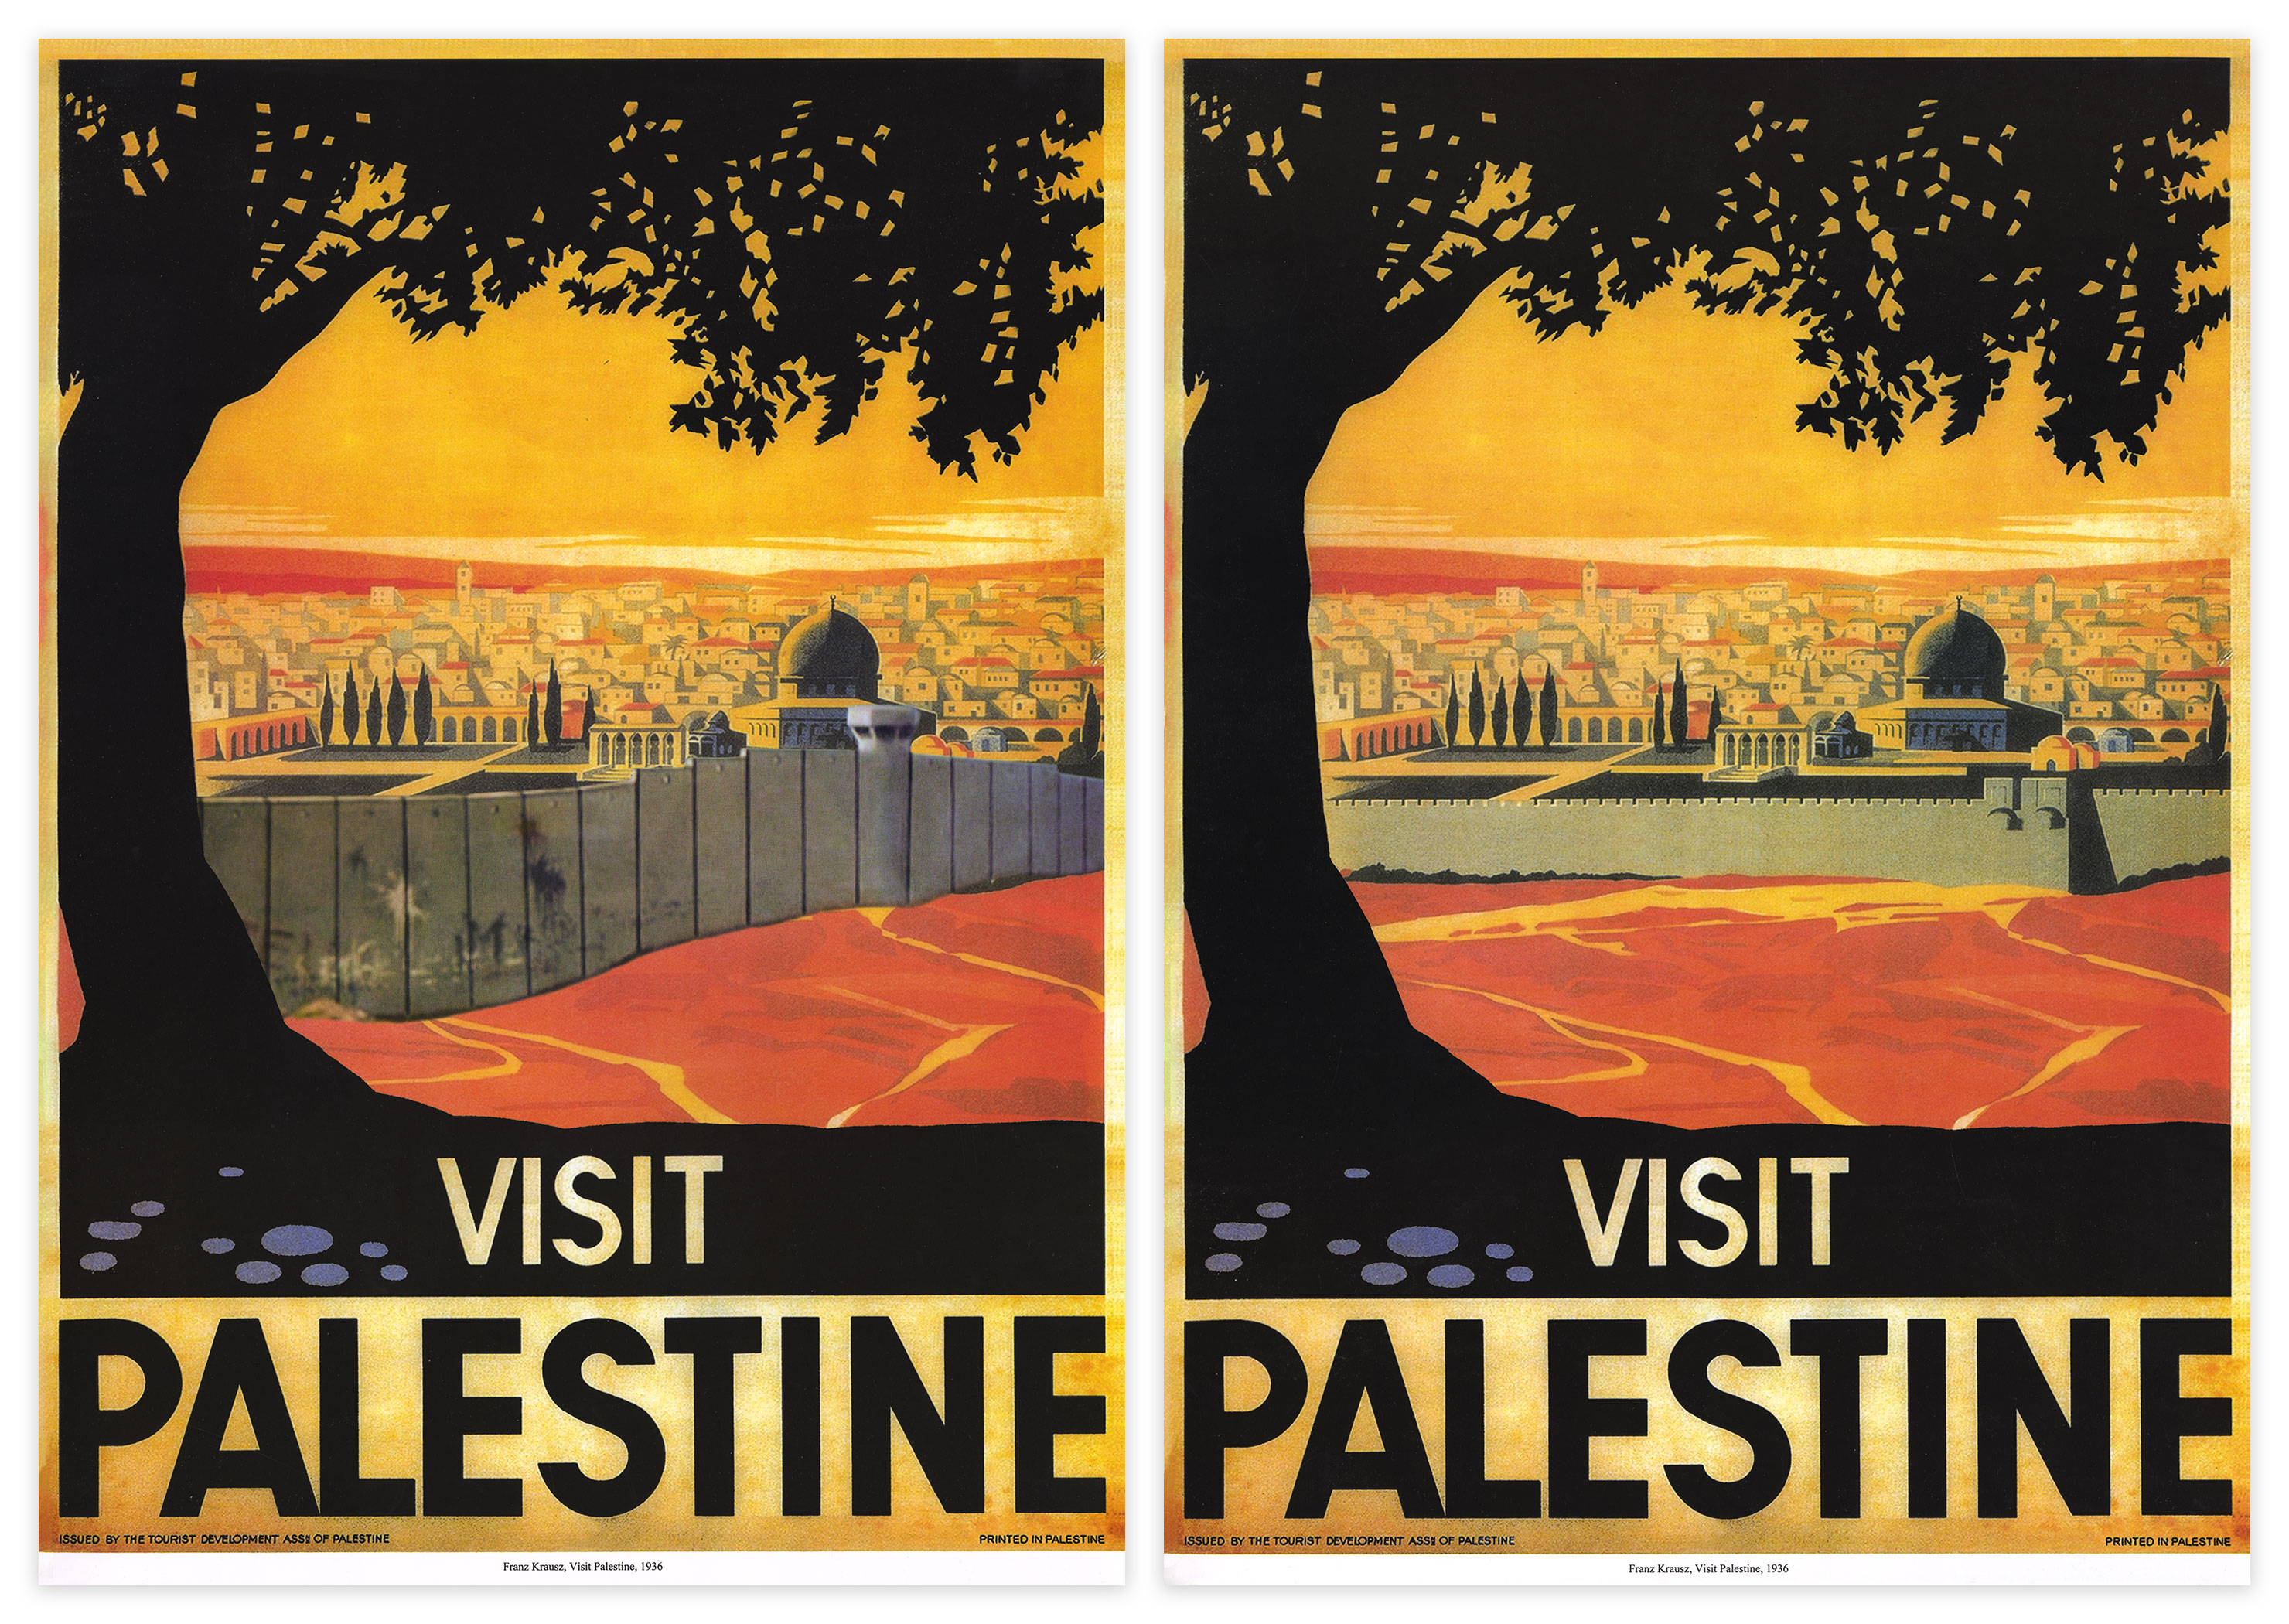 Visit Palestine posters, 2014 on left Vs. original 1936 on right